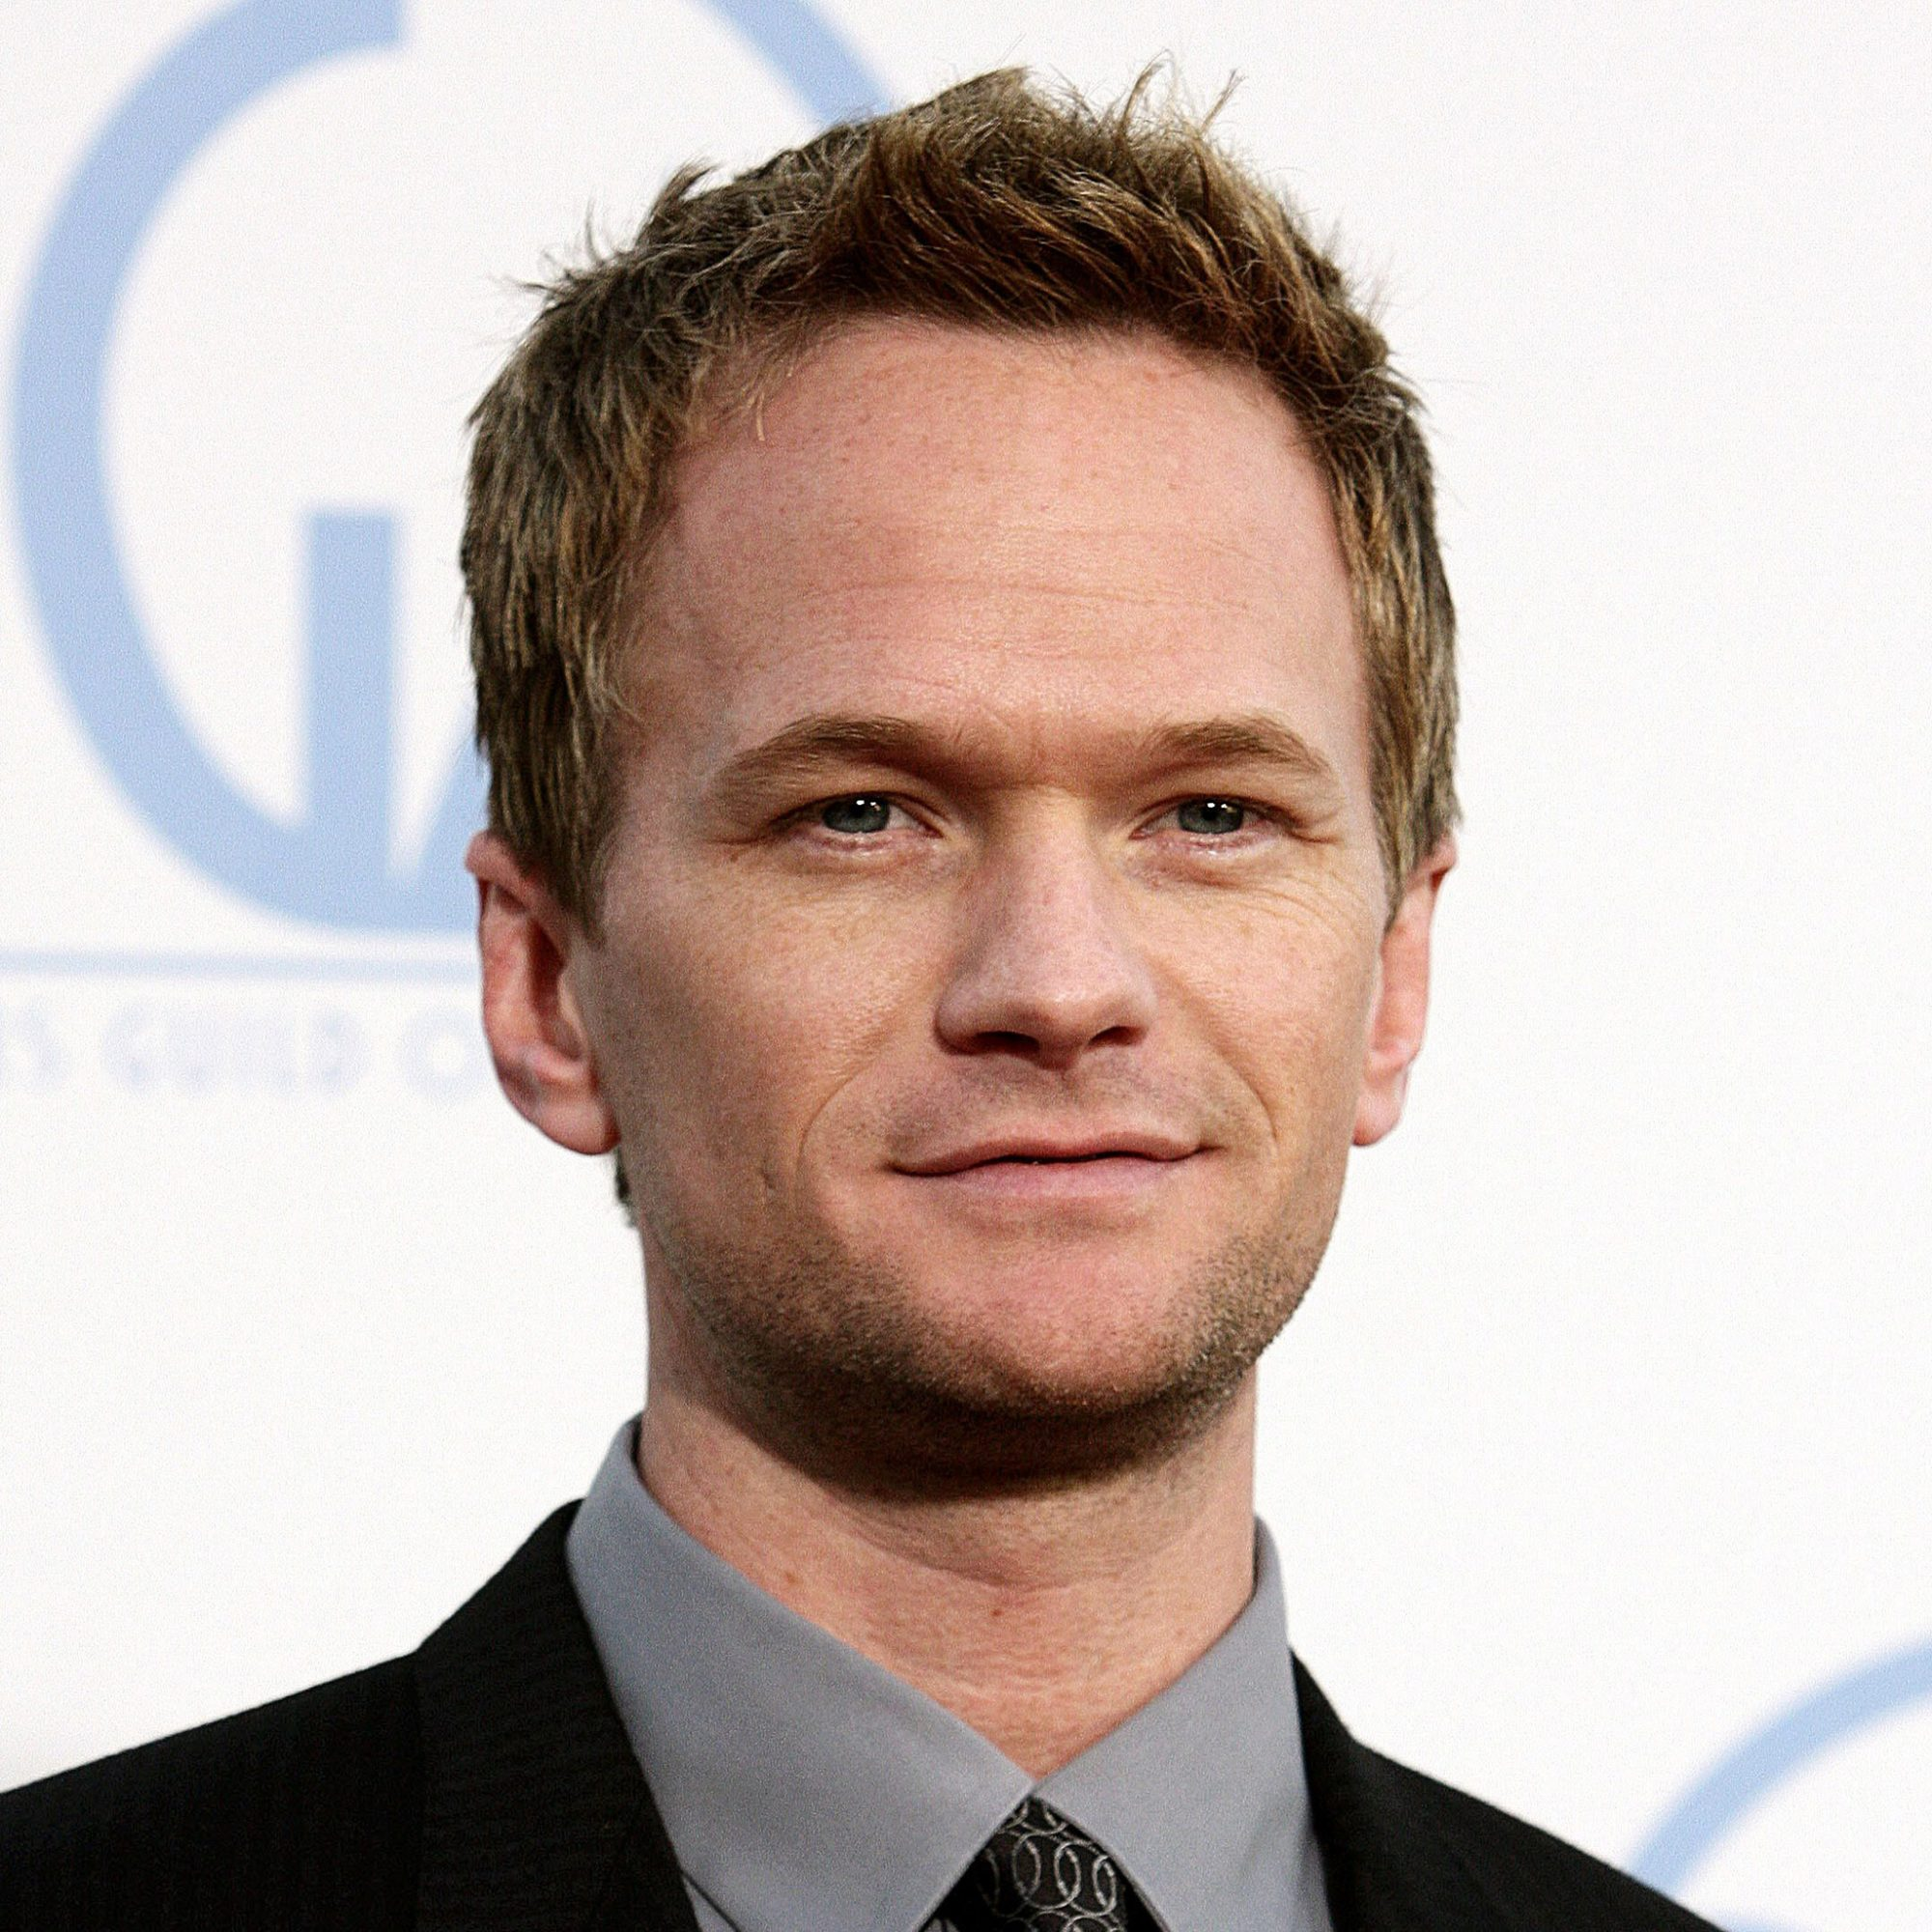 FWX HOW I MET YOUR MOTHER DRINKING GAME NEIL PATRICK HARRIS